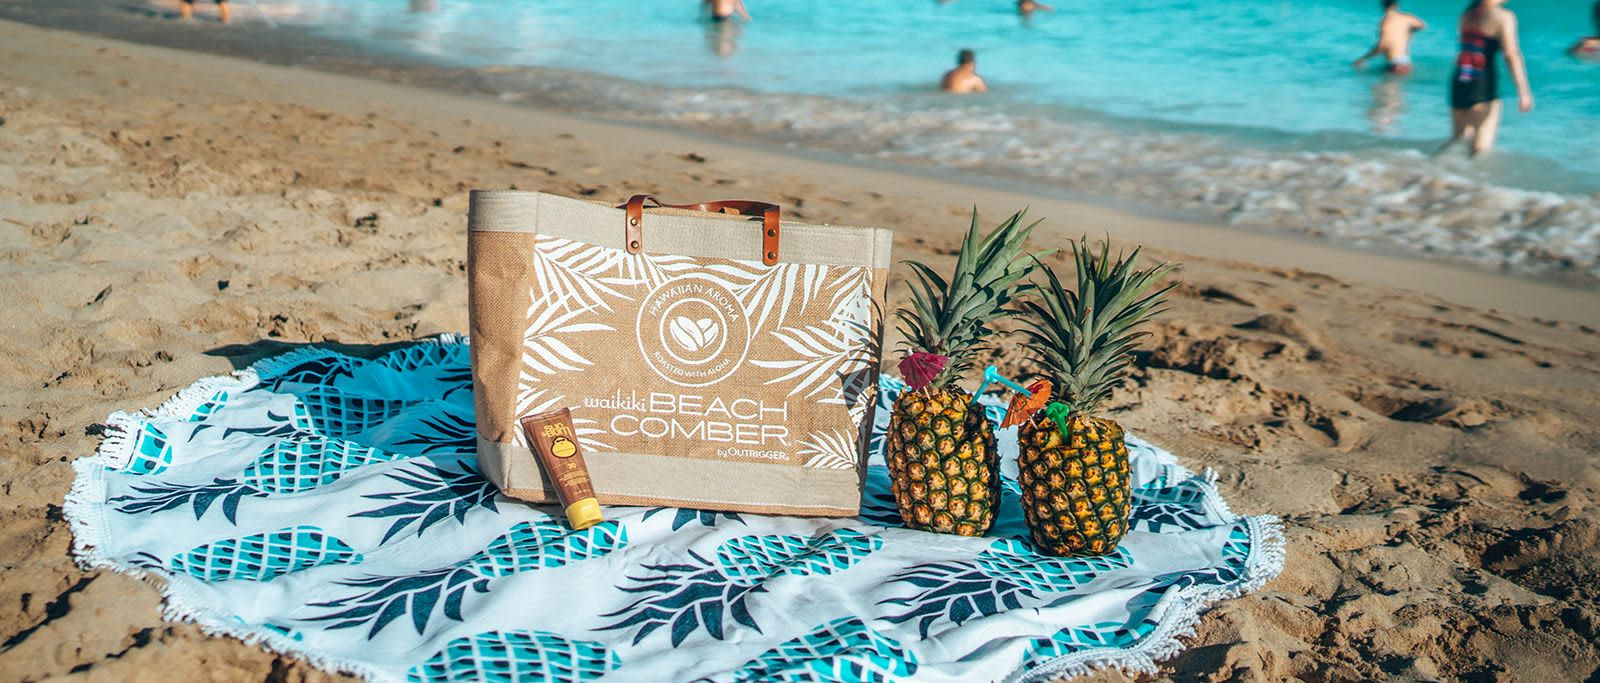 Outrigger Discovery membership at Waikiki Beachcomber by Outrigger